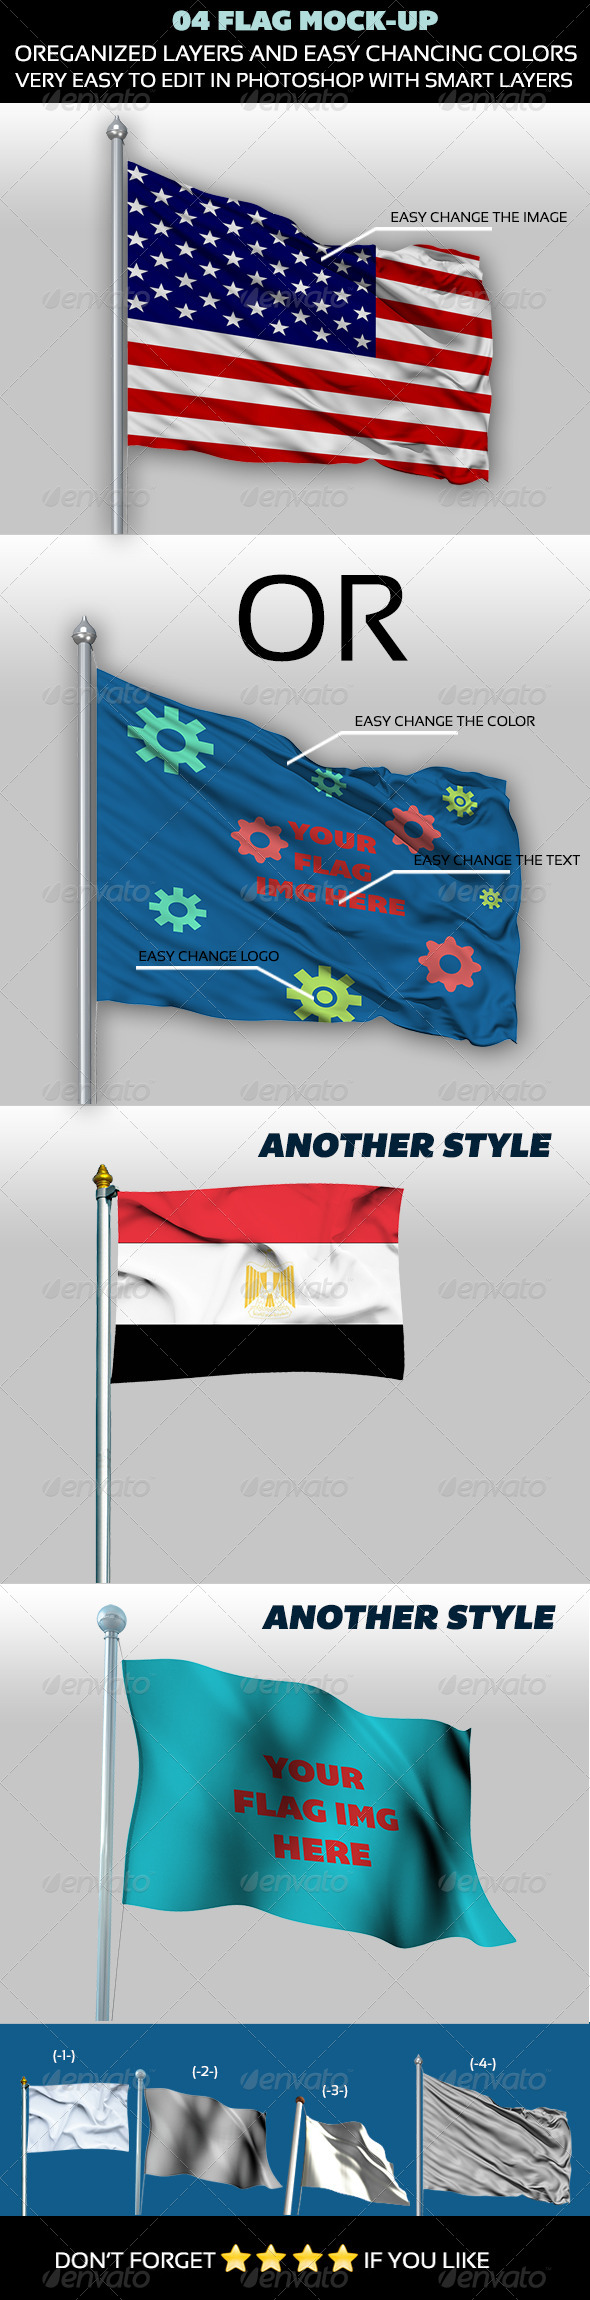 GraphicRiver 04 Flag Mock-up 4622519